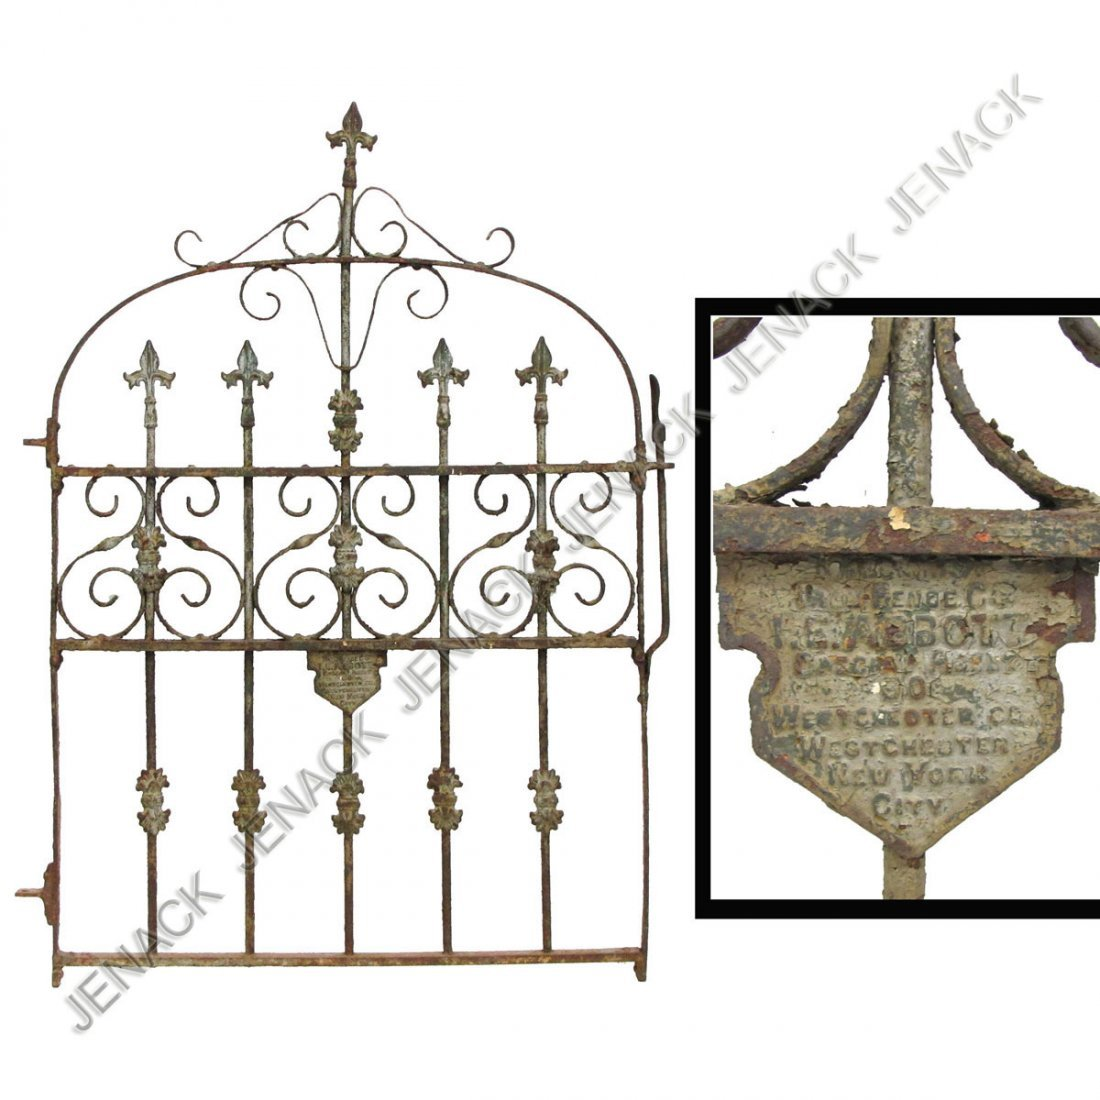 7: VICTORIAN WROUGHT IRON GATE, SIGNED I.E. ABBOT